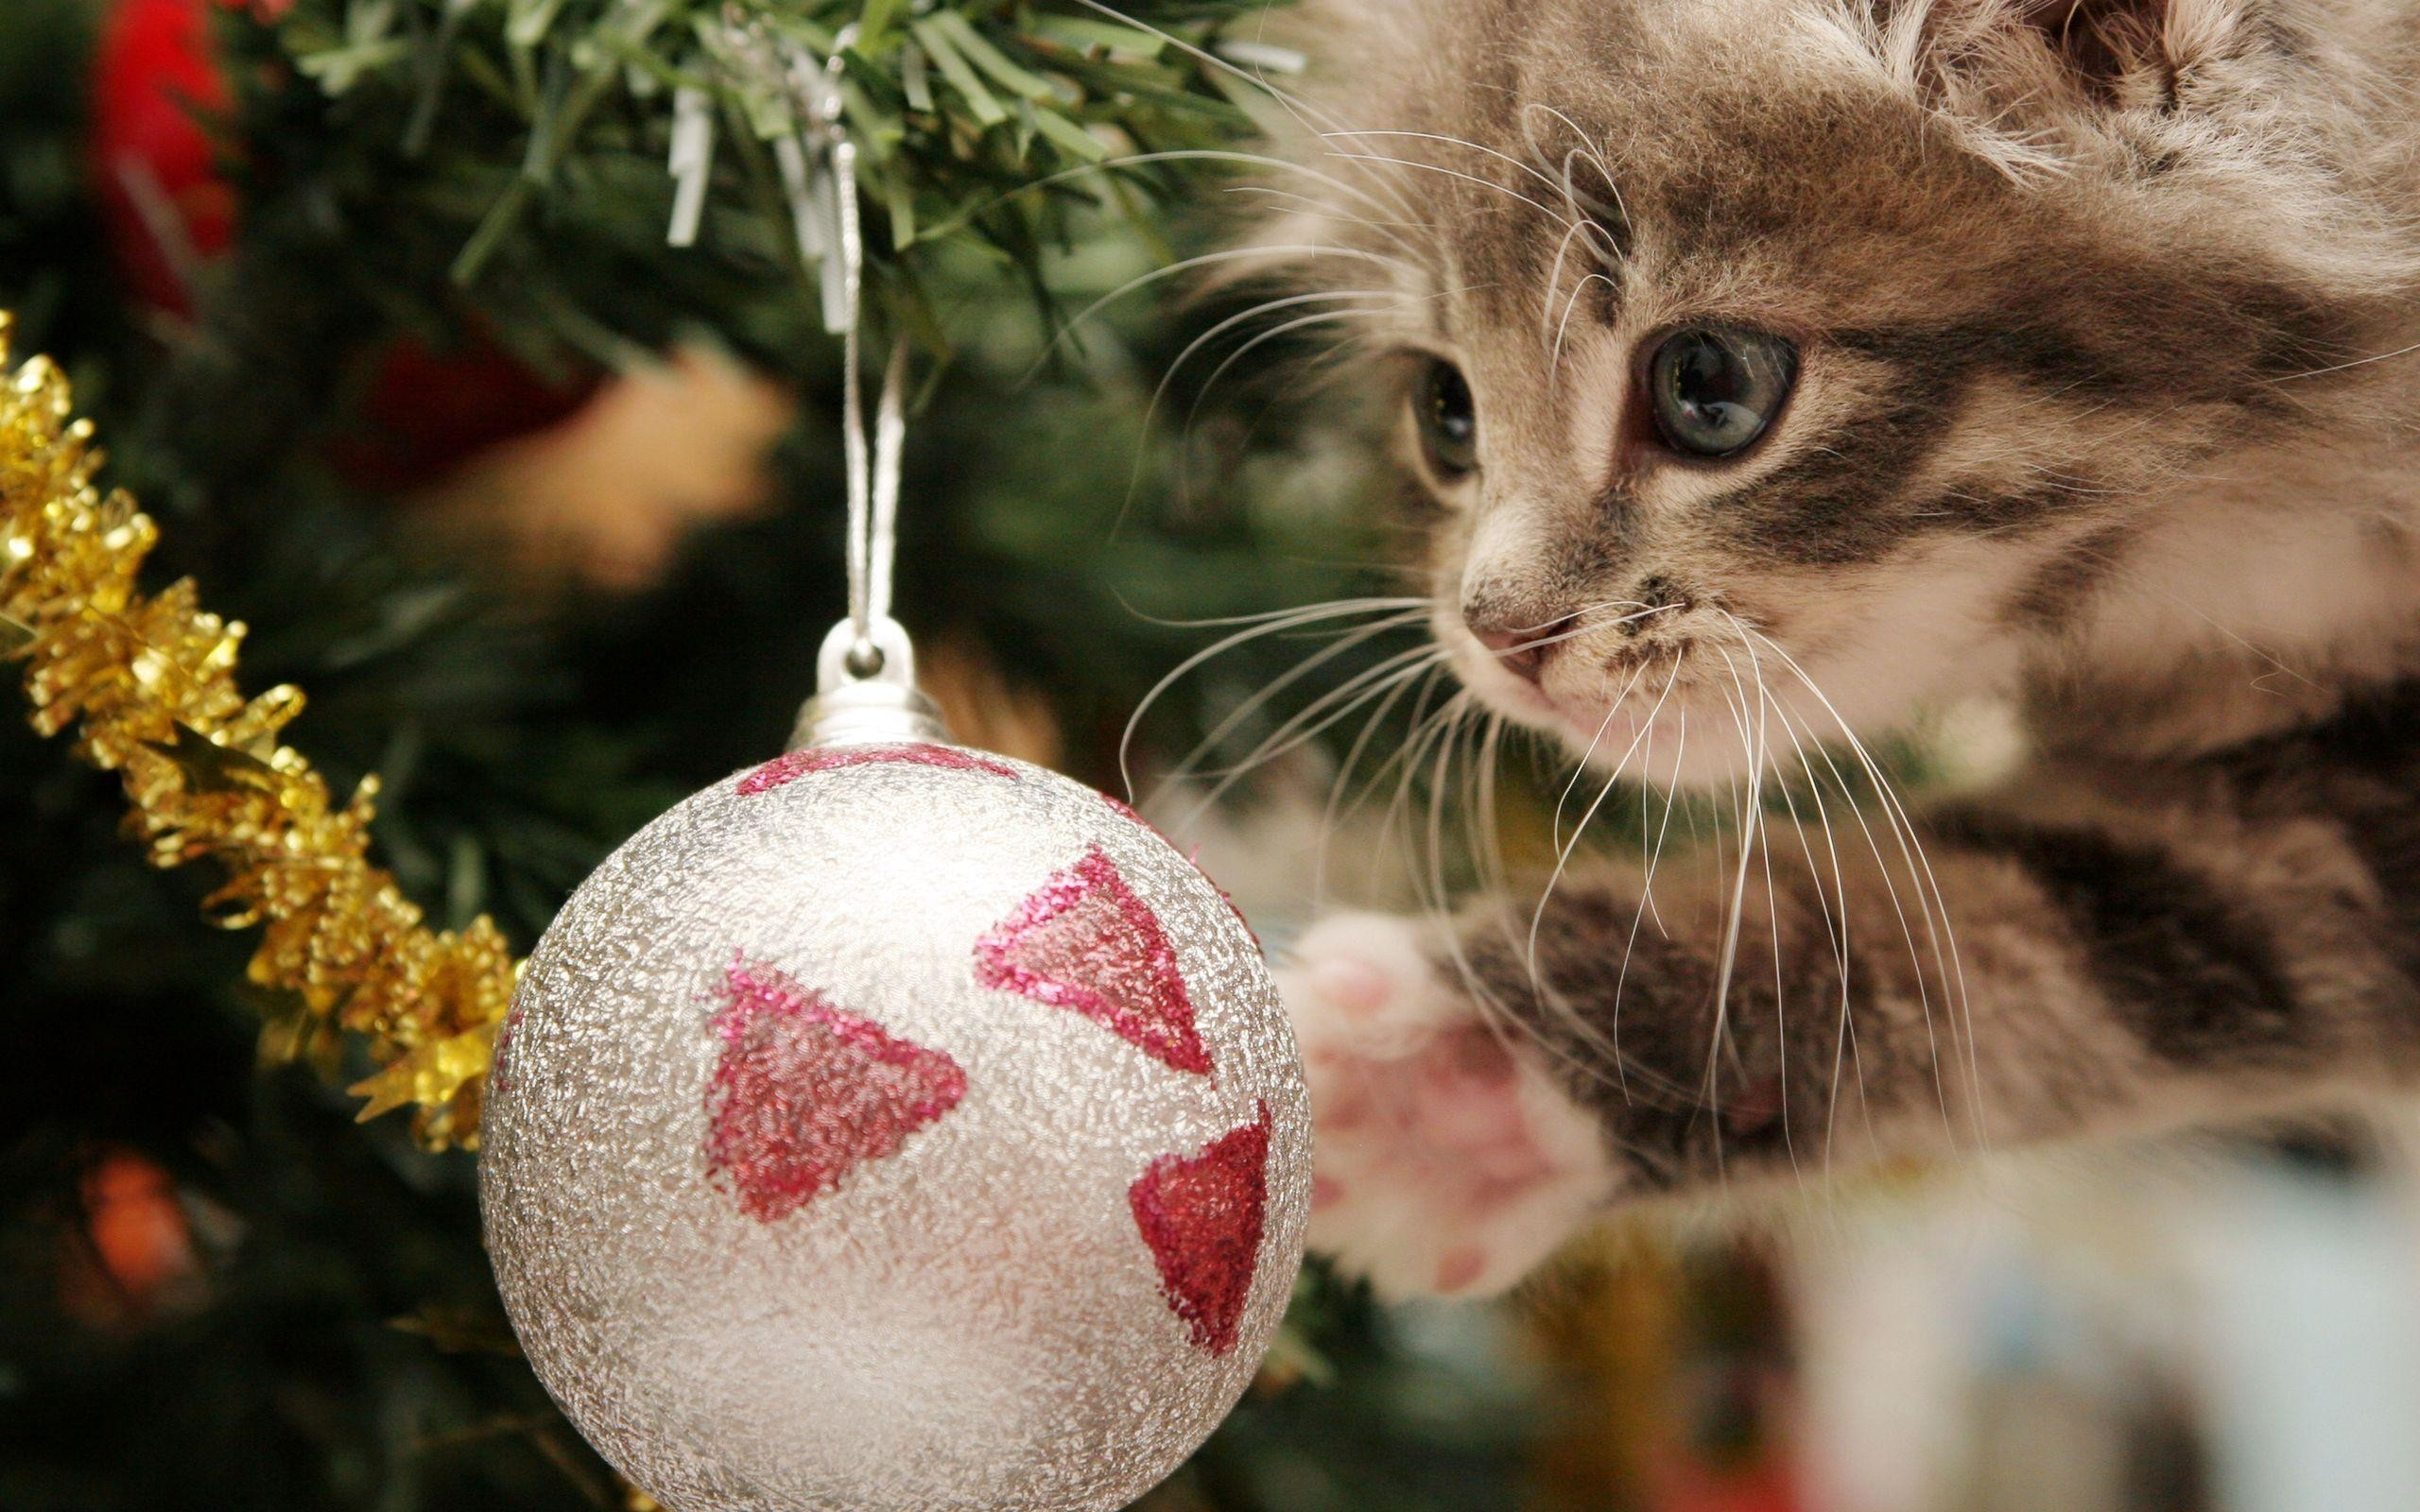 Christmas kittens wallpaper 59 images 2560x1600 xmas stuff for christmas kittens wallpaper thecheapjerseys Gallery